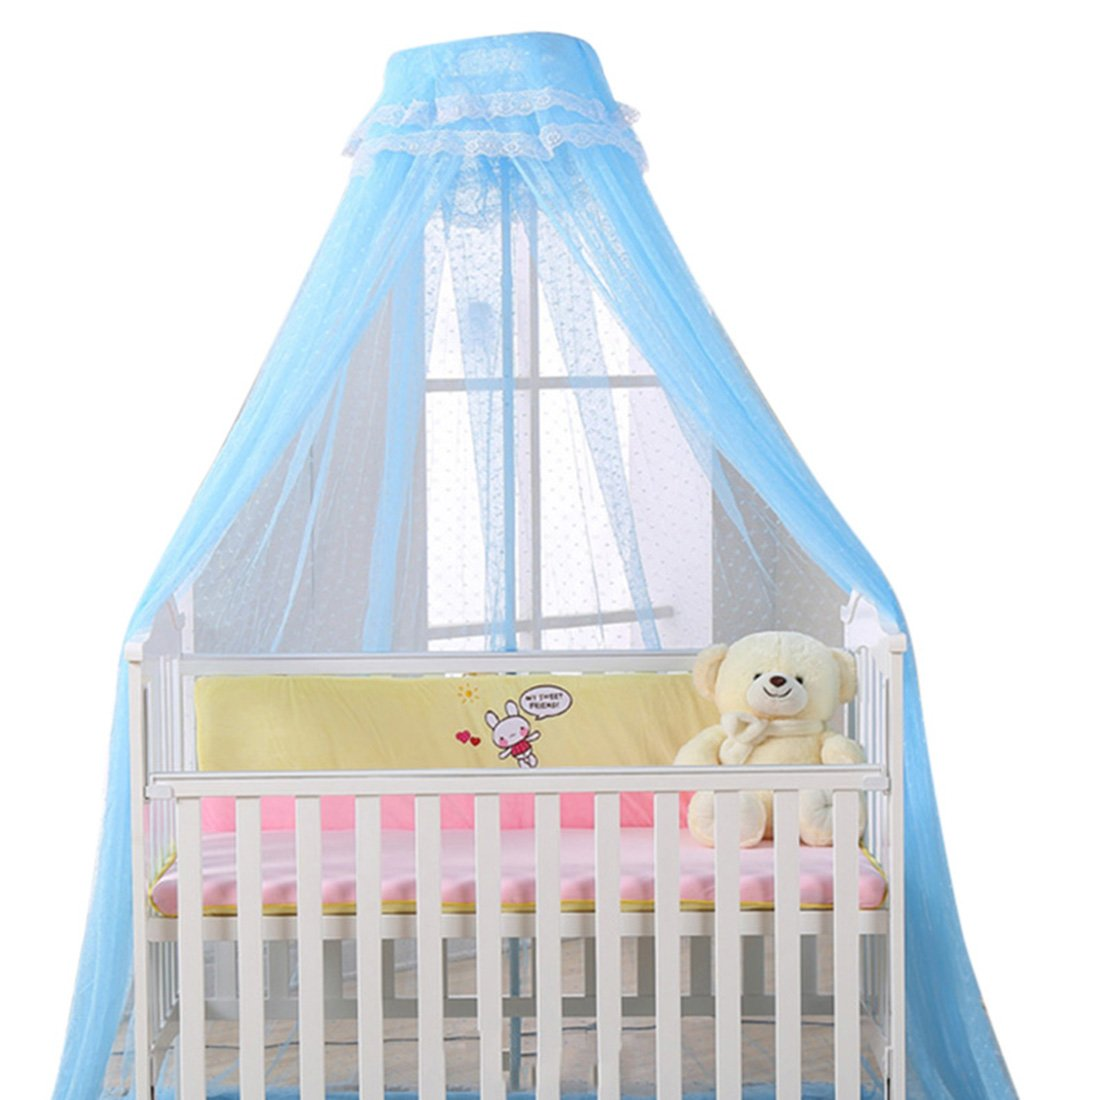 Tiantuo Baby Bed Crown Canopy Royal Court Mosquitoes Cover Polyester Yarn Stainless Steel Mosquito Nets for Children Fly Insect Protection Blue Net + Holder